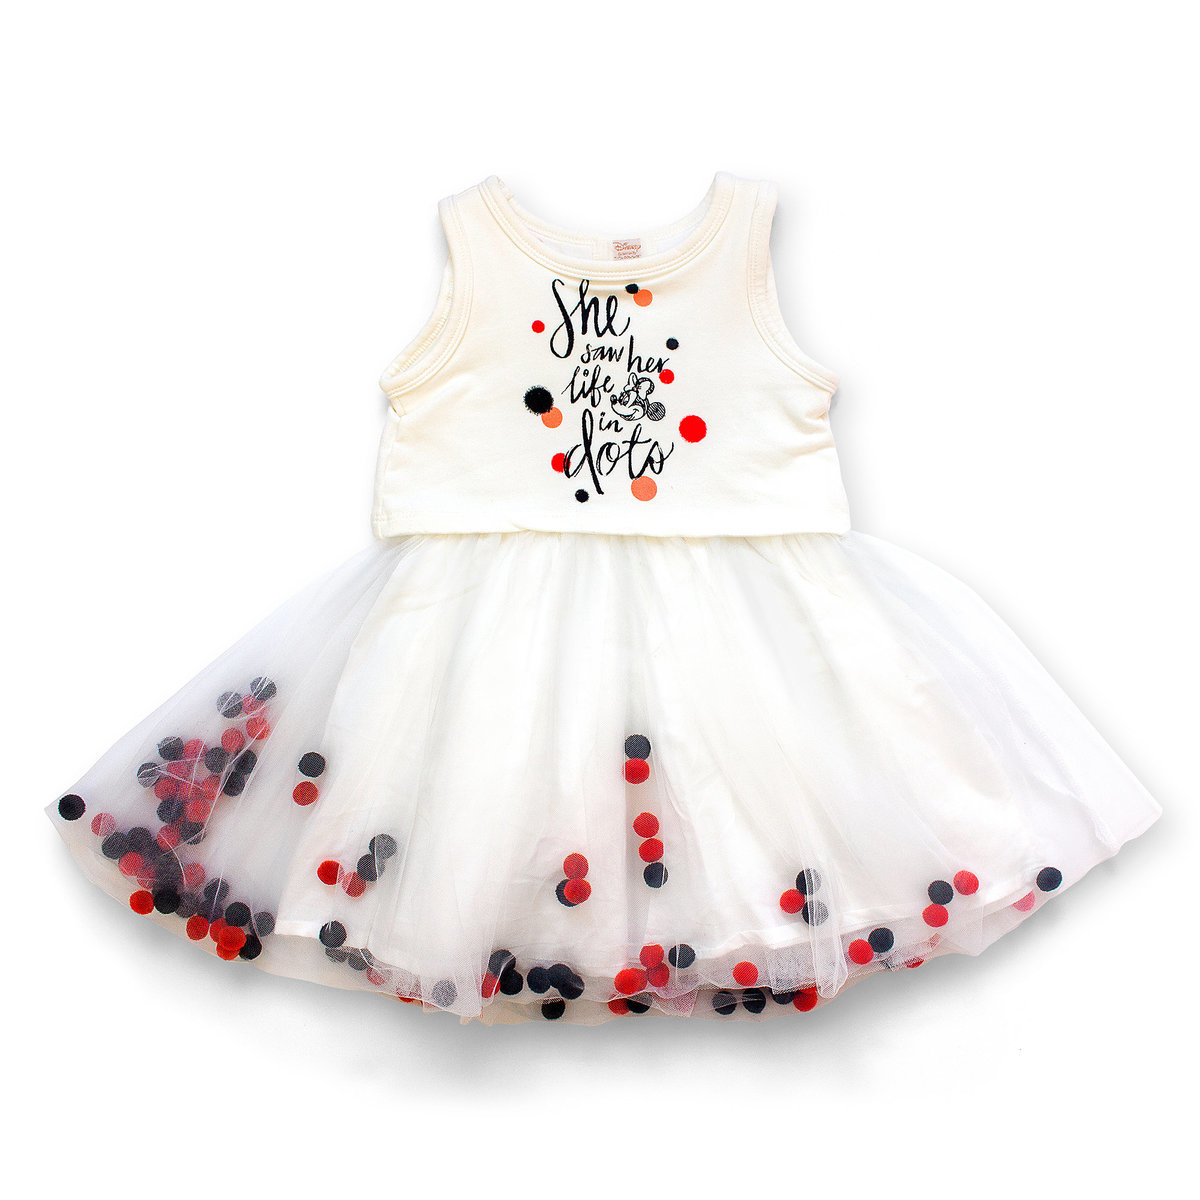 7536be7c4f Product Image of Minnie Mouse Pom-Pom Tutu Dress for Girls by Tutu Couture #